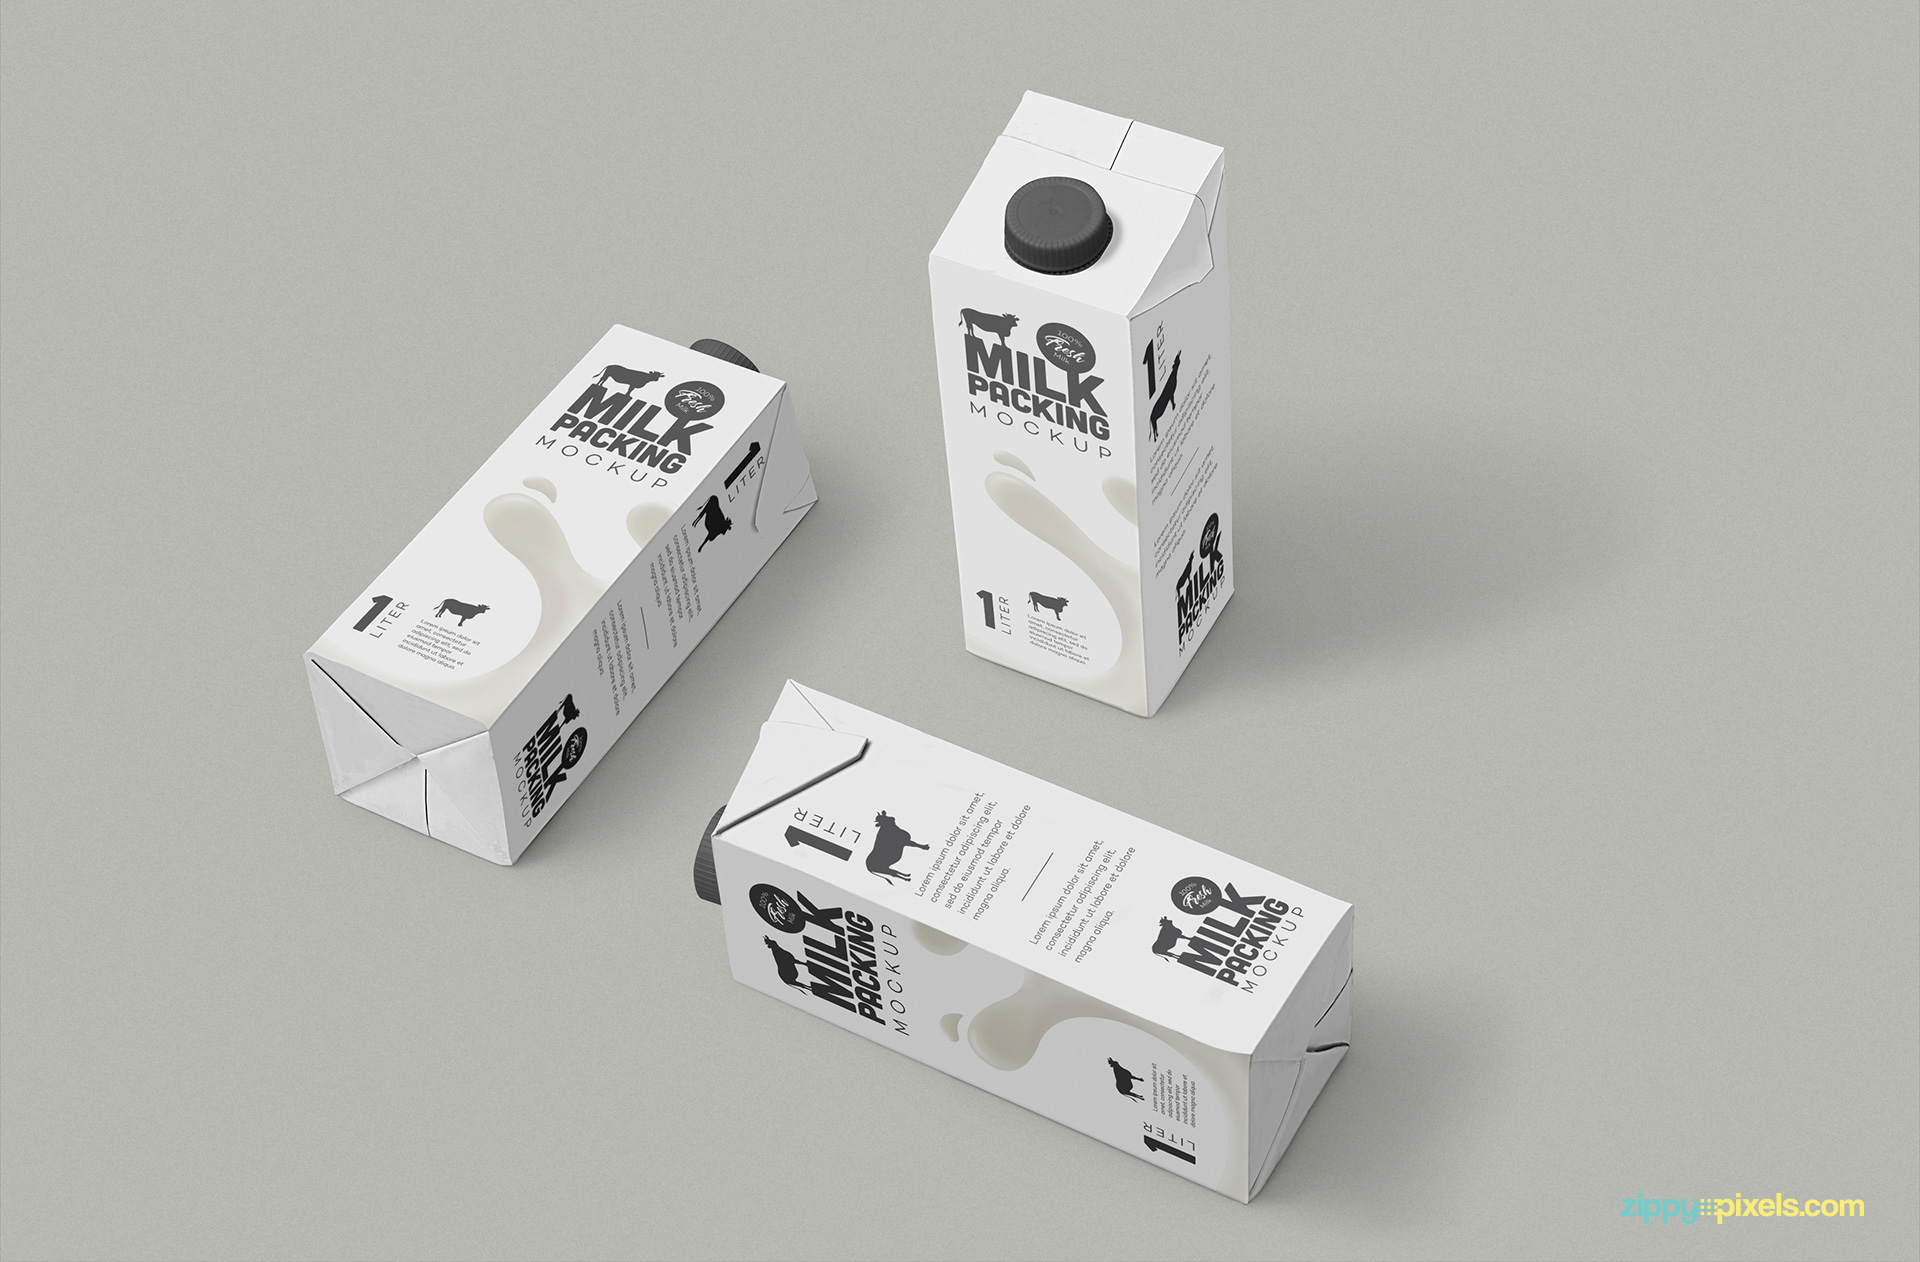 Three milk carton placed on customizable background.